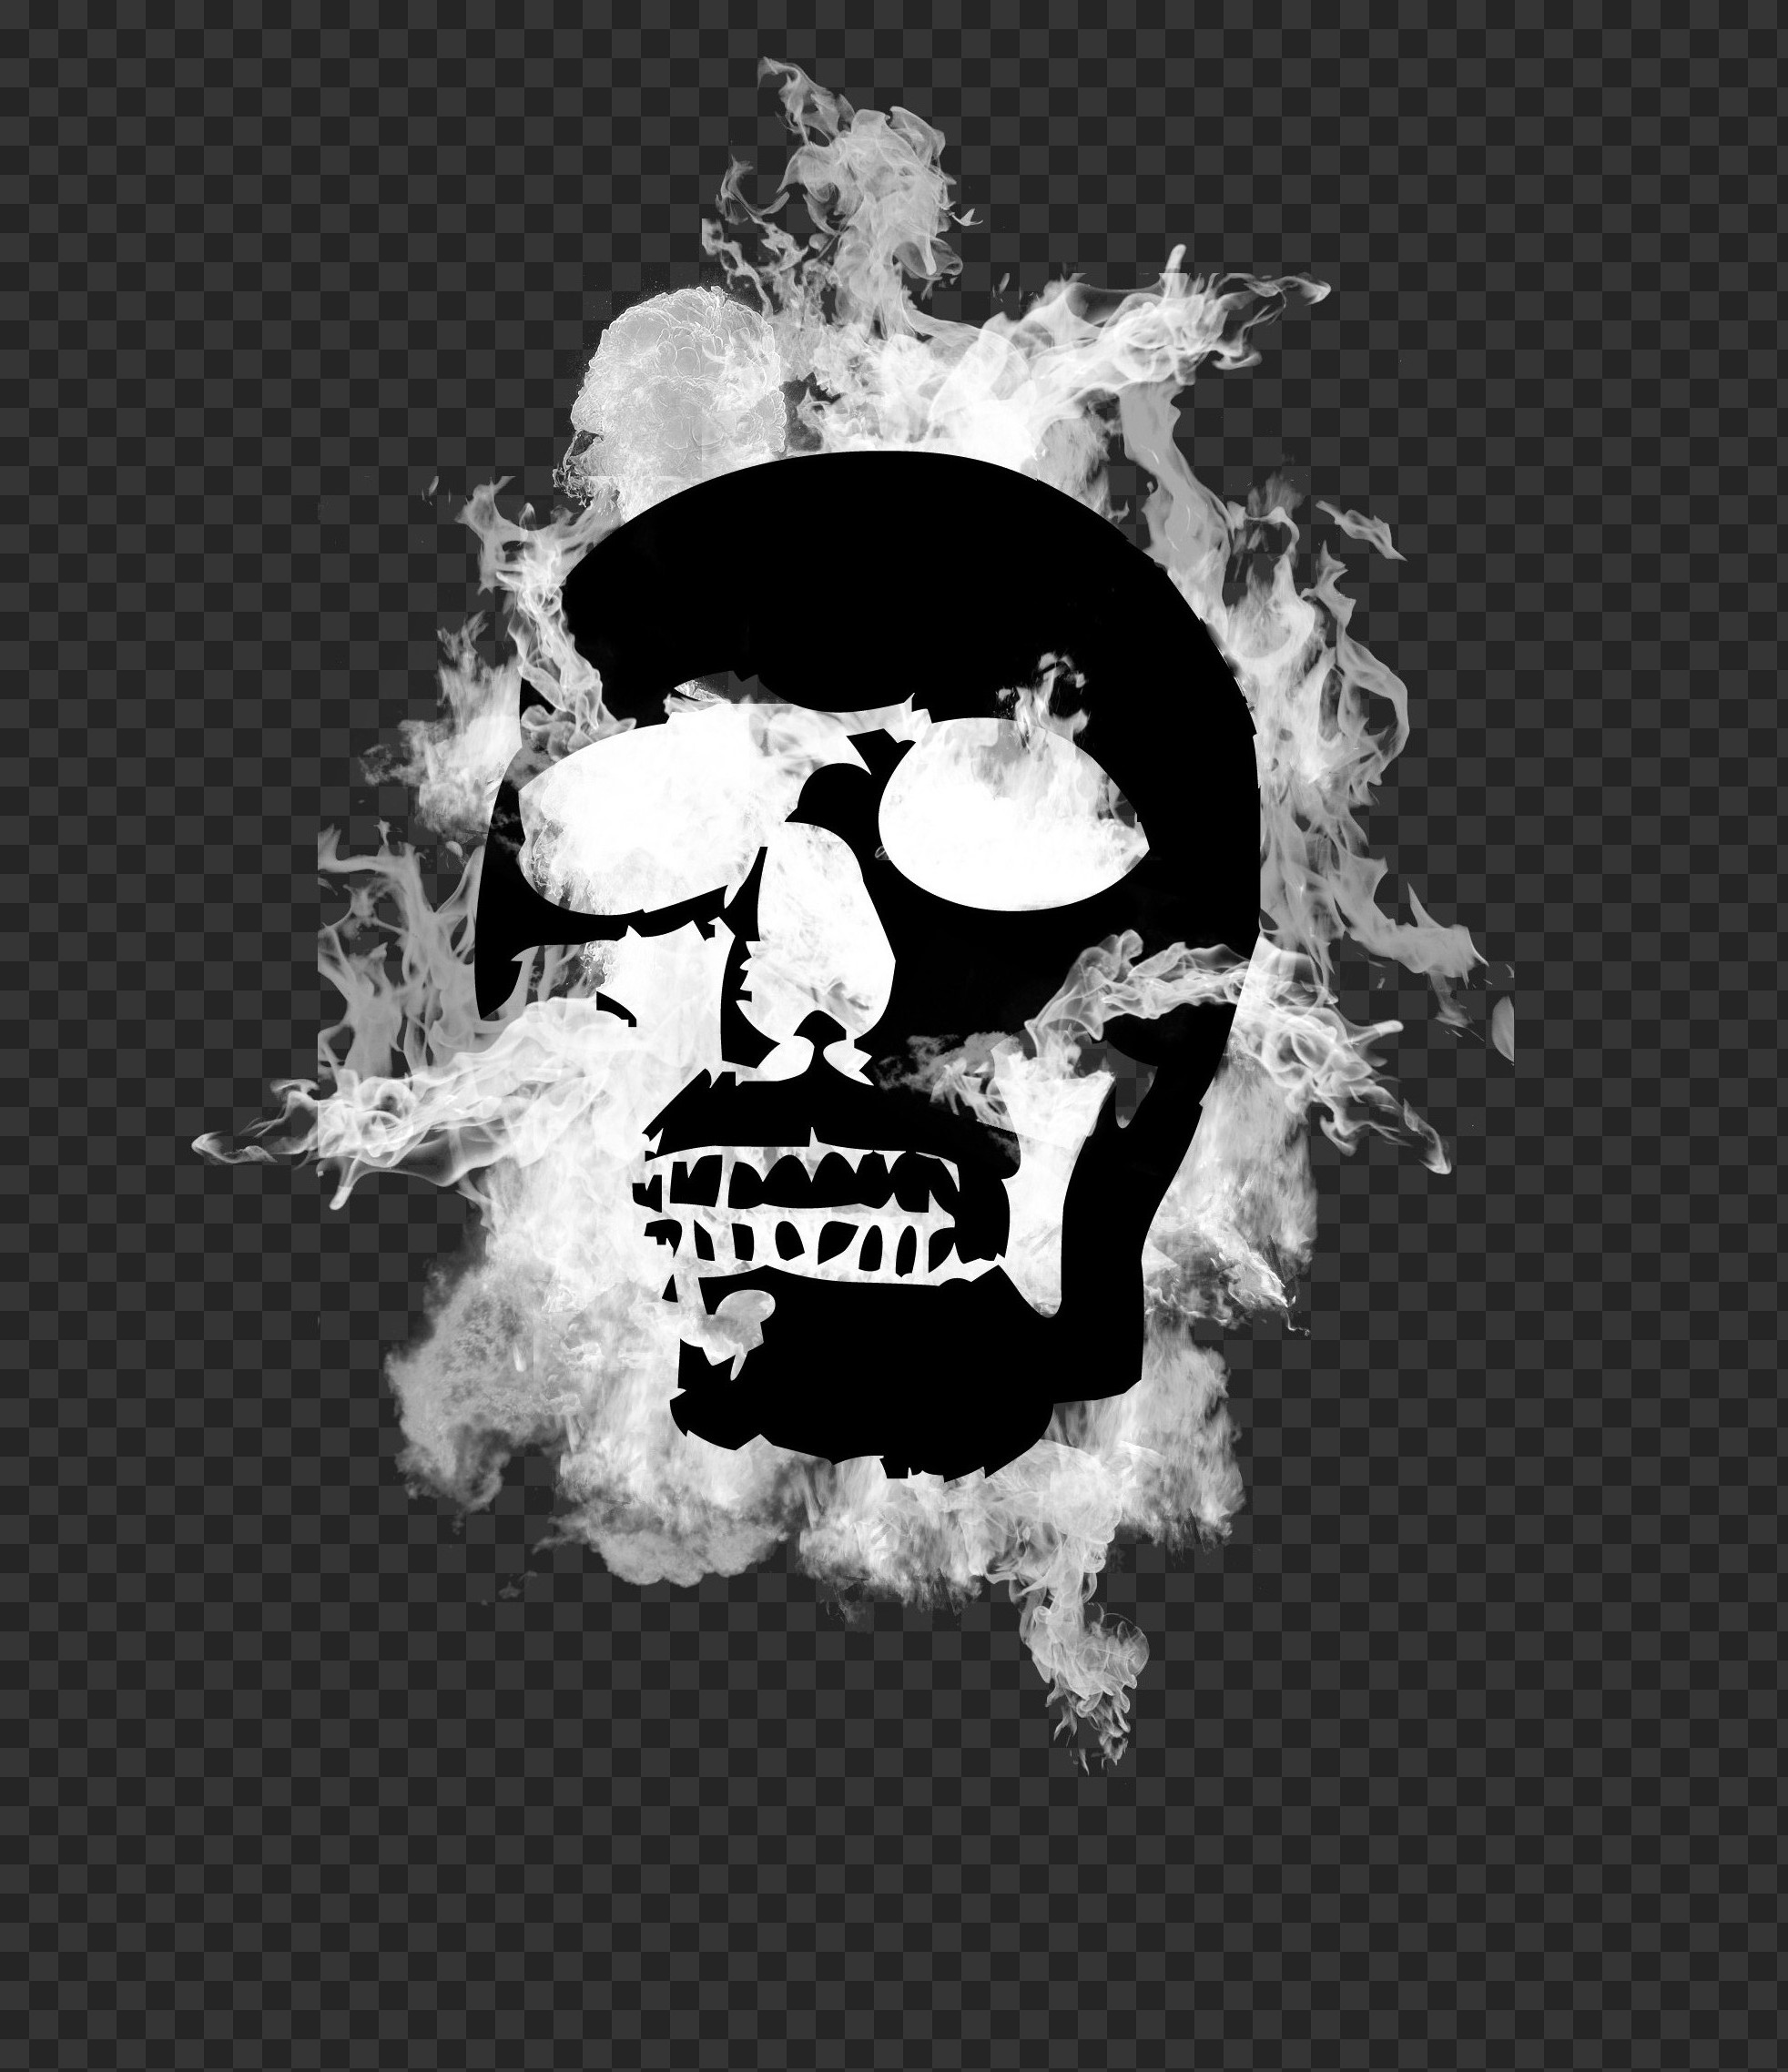 graphic image of a flaming skull